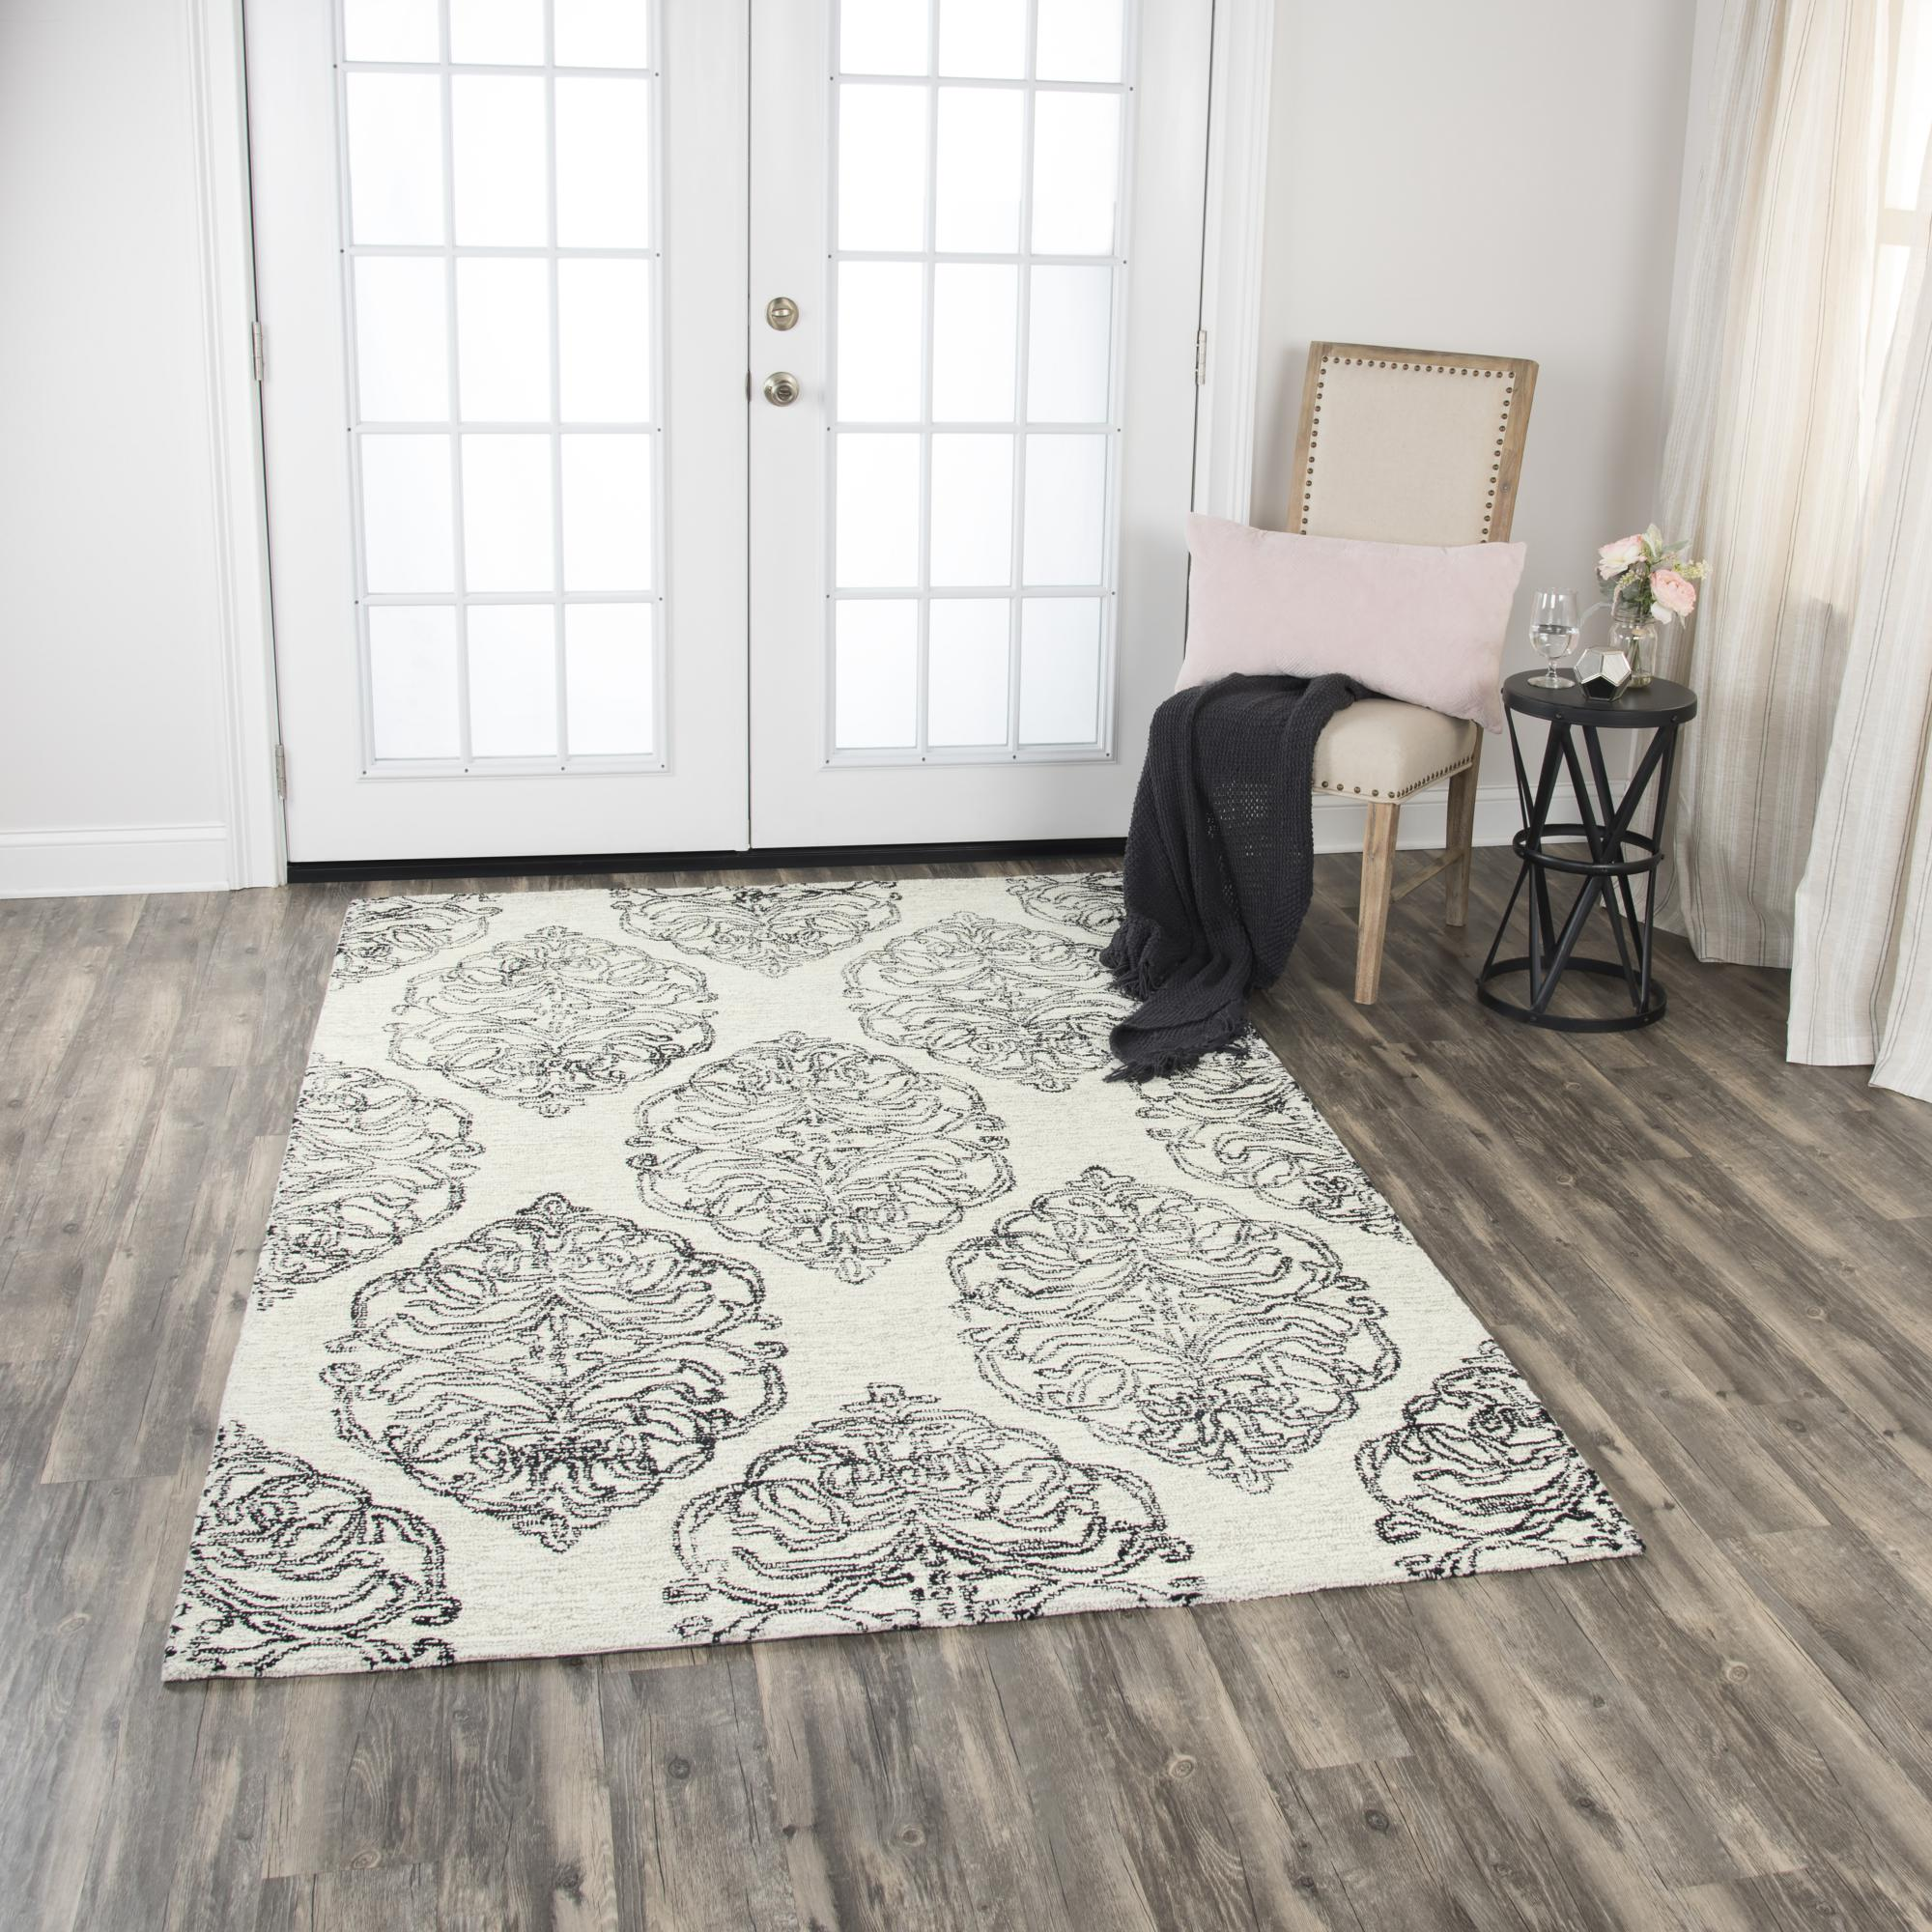 Rizzy Home Opulent Shag 5' x 8' Area Rug